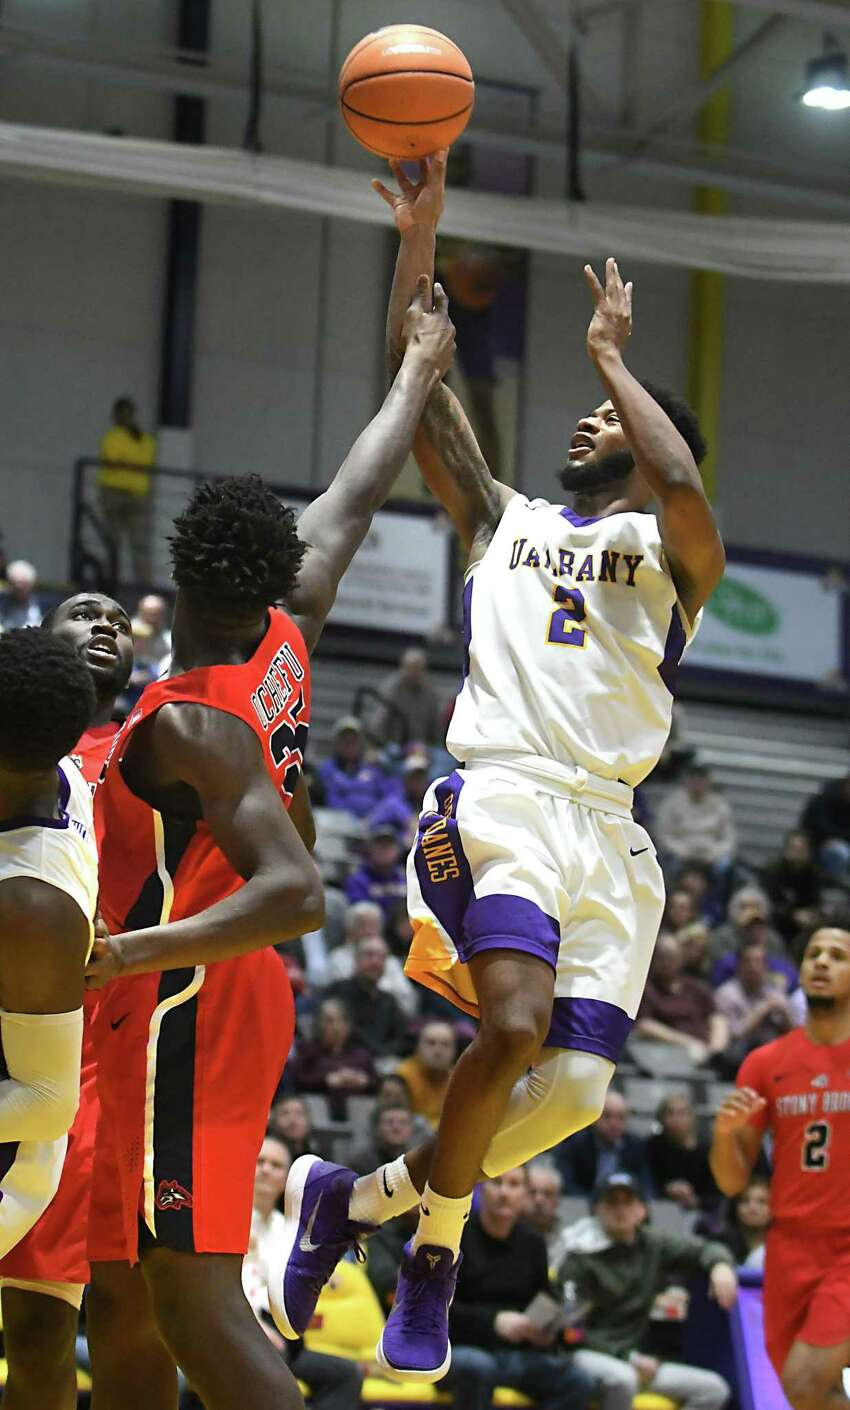 University at Albany's Ahmad Clark takes a shot guarded by Stony Brook's Anthony Ochefu during a basketball game at SEFCU Arena on Wednesday, Jan. 10, 2018 in Albany, N.Y. (Lori Van Buren/Times Union)